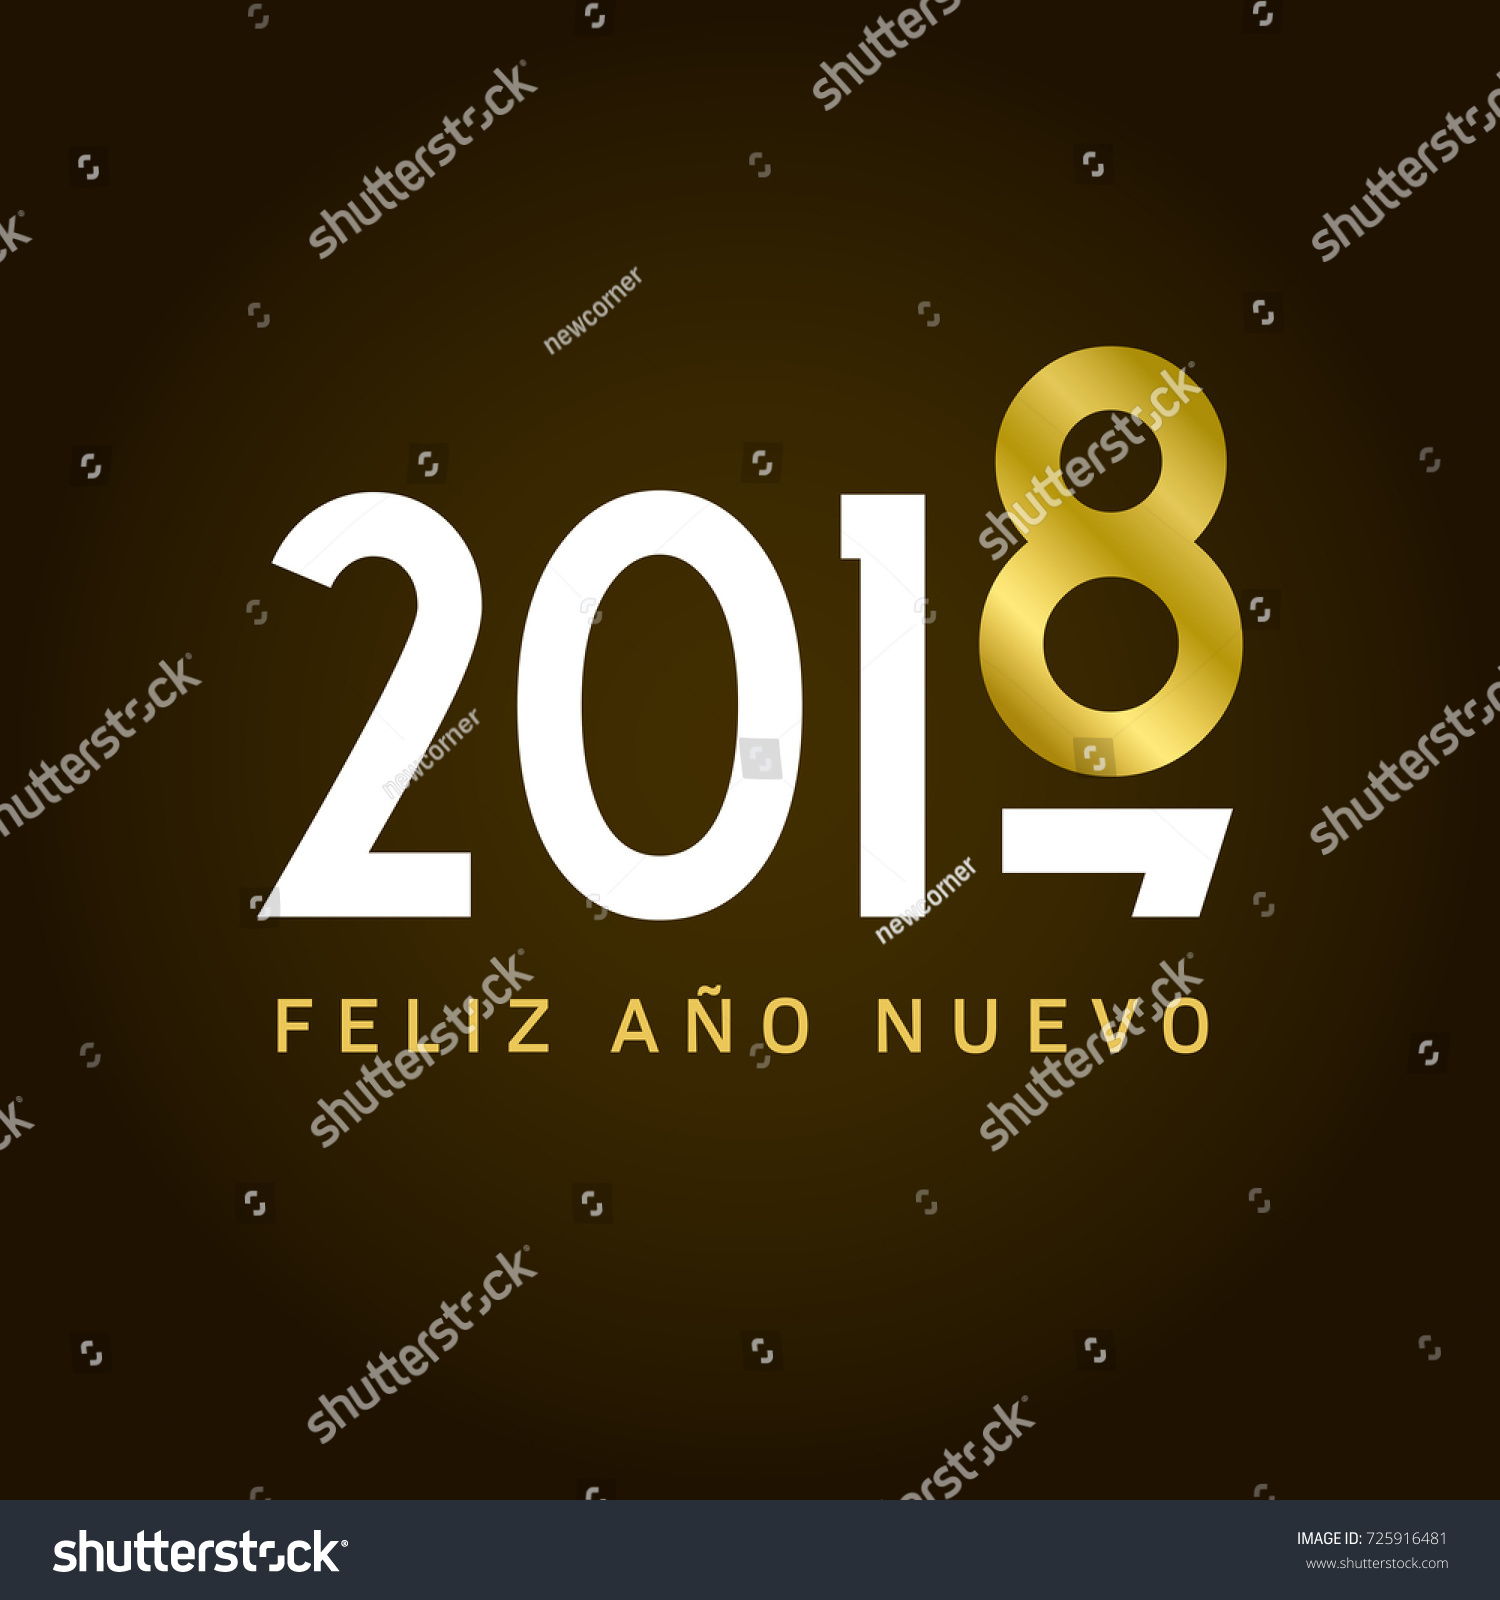 happy new year 2018 card movement type spanish version editable vector design